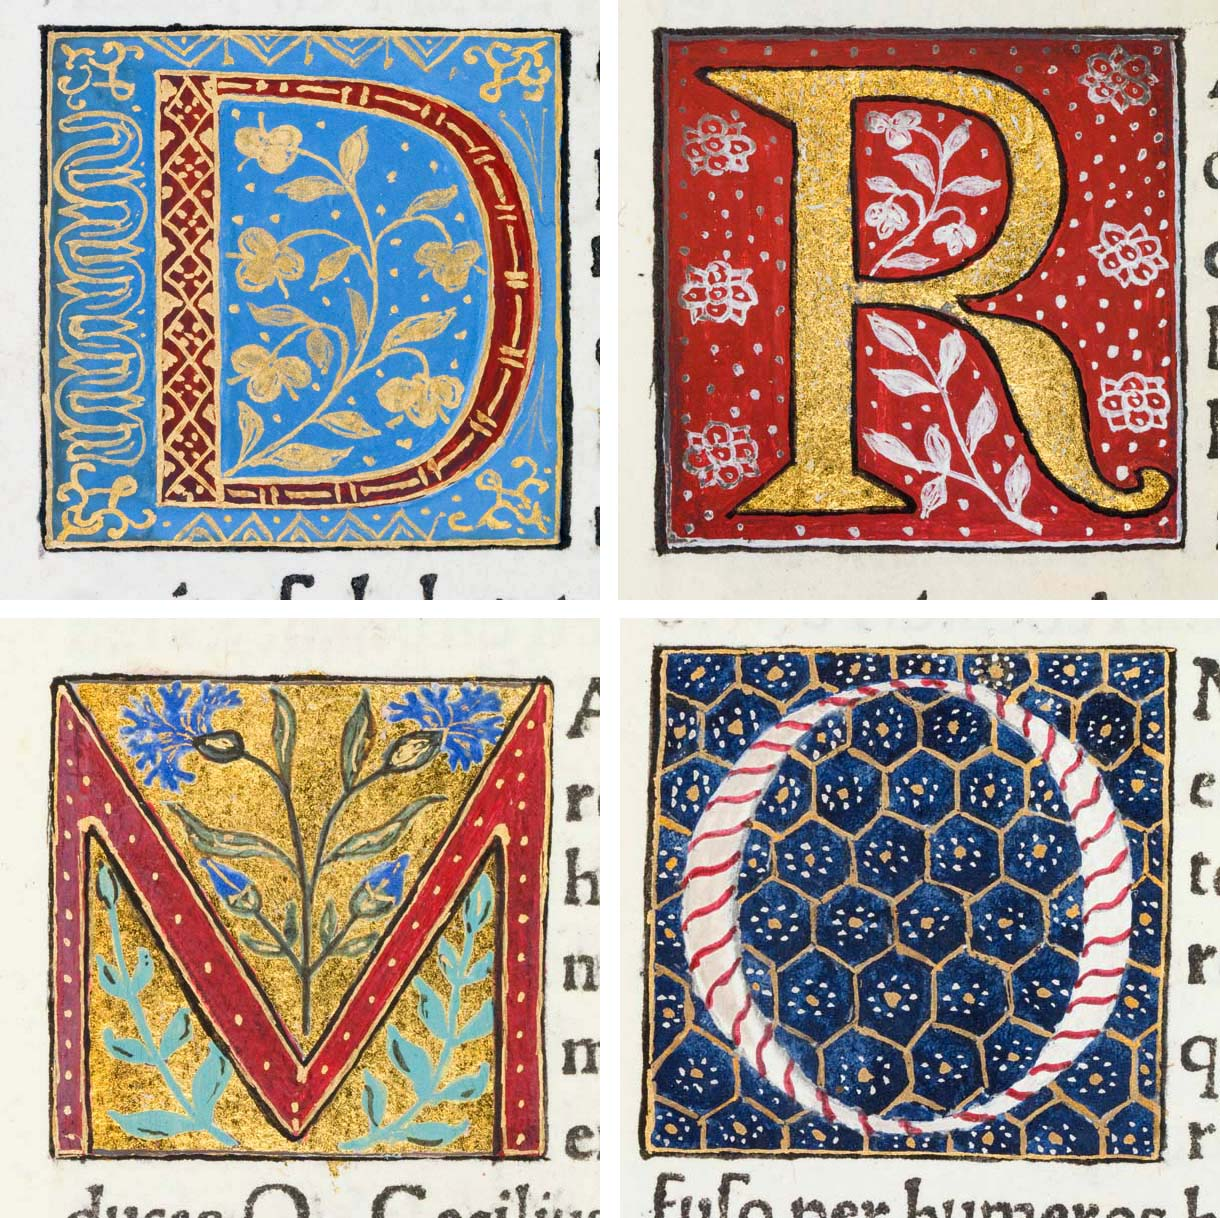 Medieval Illuminated Letter Patterns